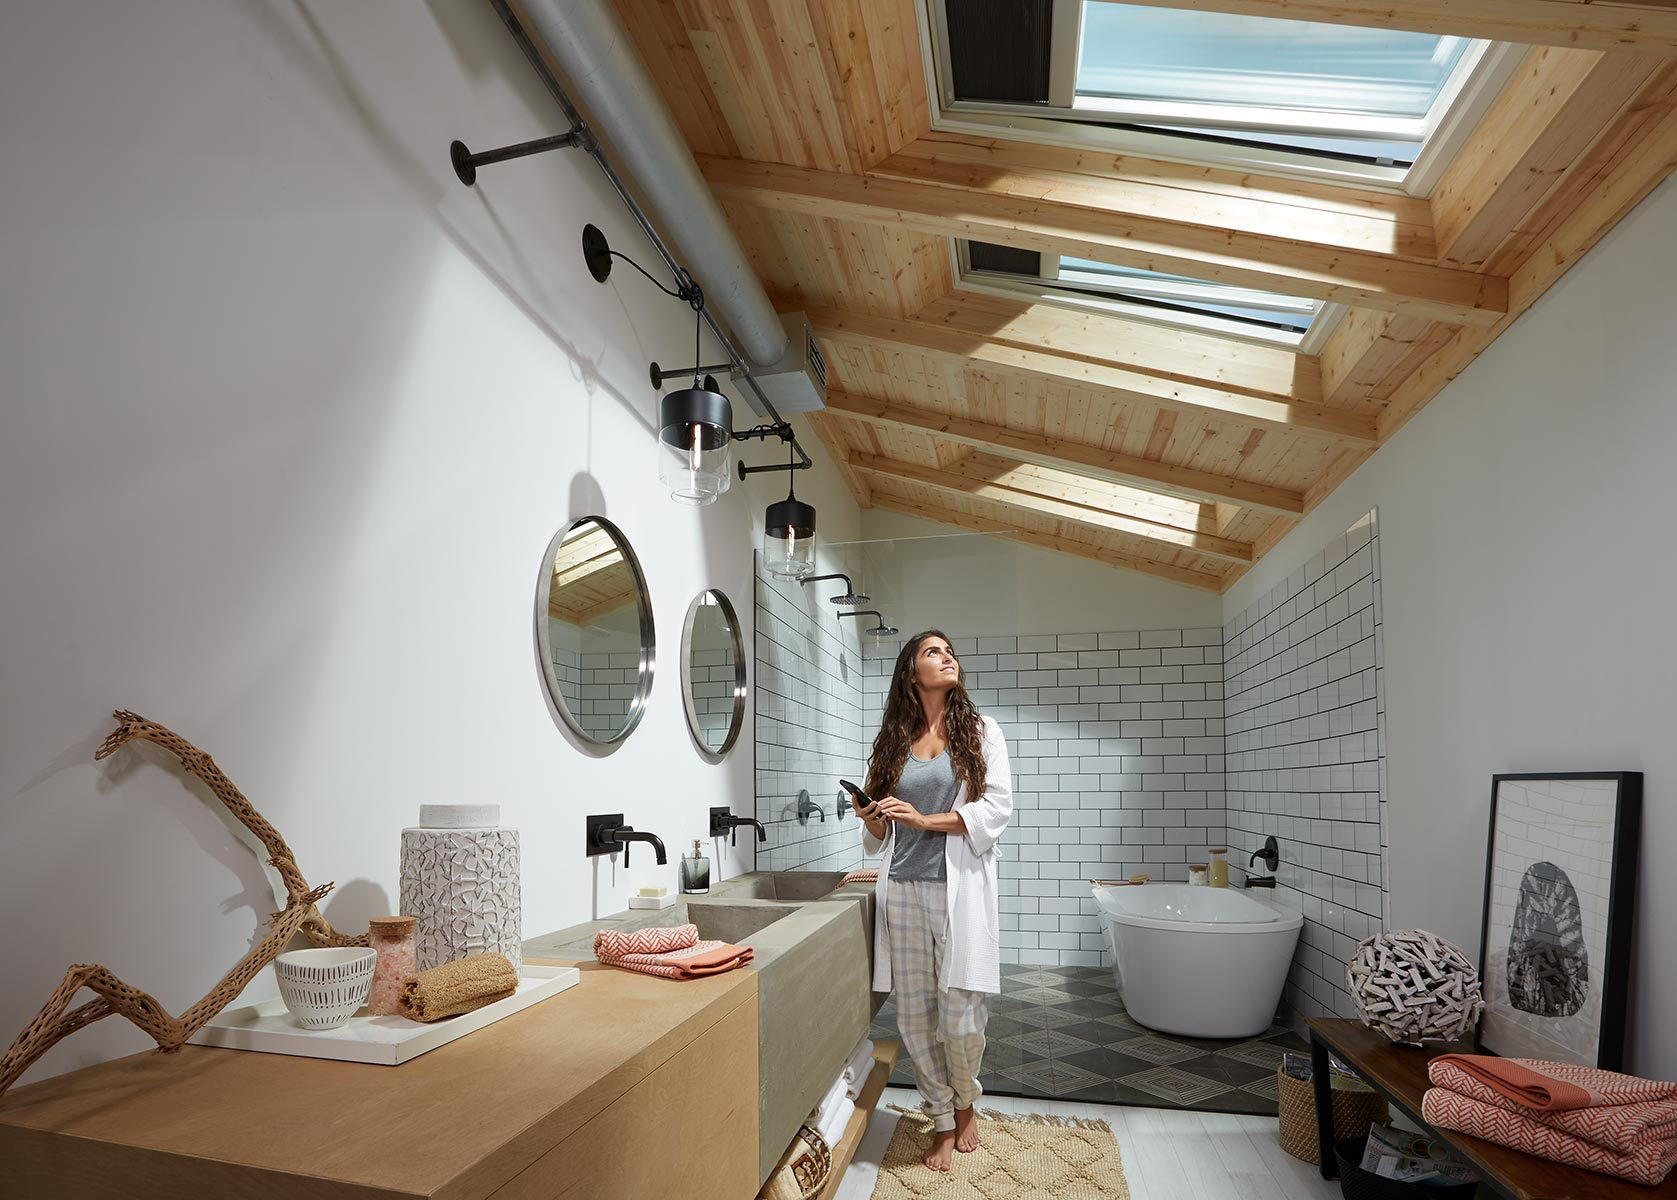 Skylight Window Installation Cost Contractor Quotes Earlyexperts